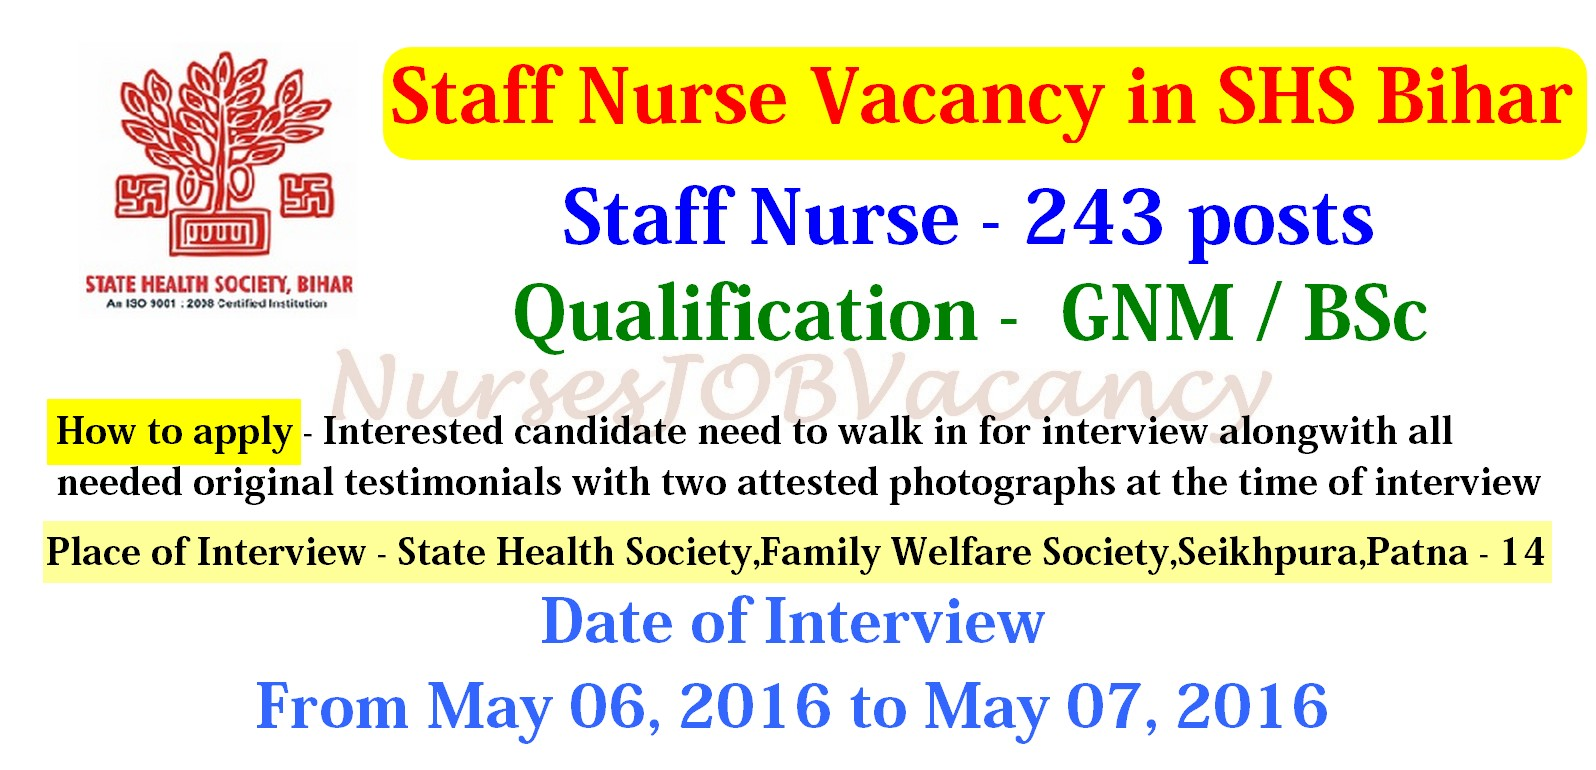 nurses job vacancy anm staff nurse vacancy in shs bihar 2016 state health society shs bihar has invited application for recruitment of the auxiliary nurse midwife anm staff nurse posts by walk in interview